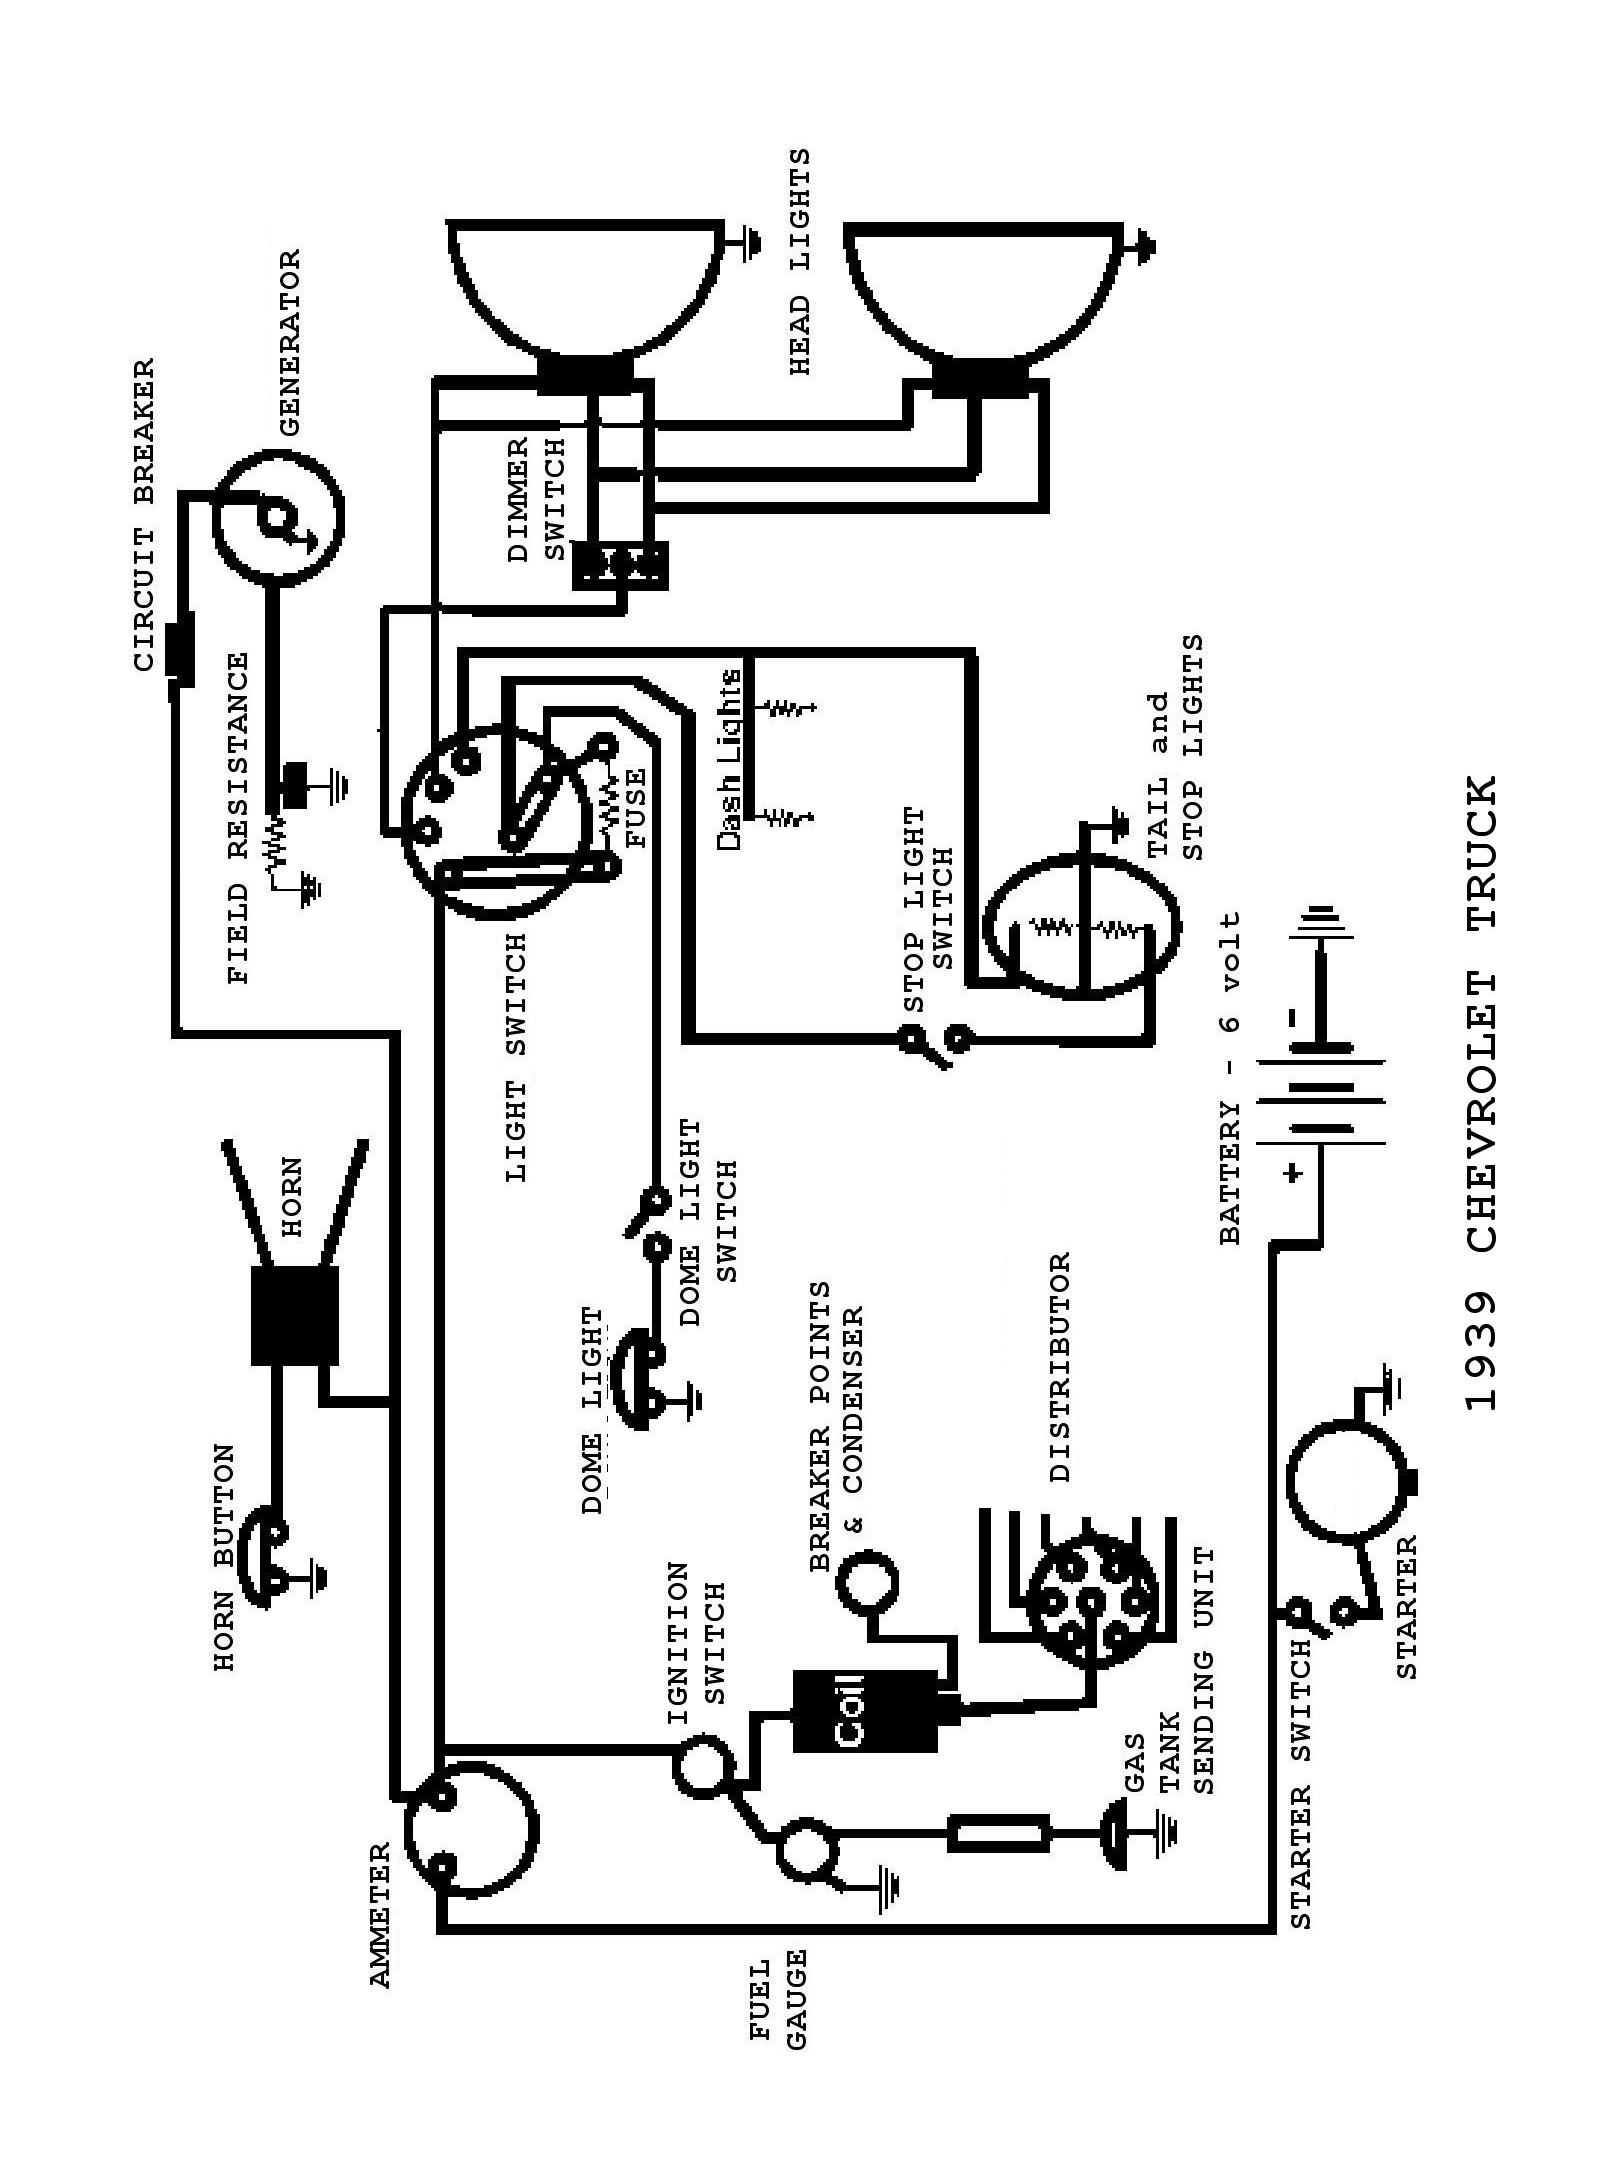 39truck ihc truck wiring diagrams mazda truck wiring diagrams \u2022 free 1979 Corvette Fuse Box Diagram at mifinder.co